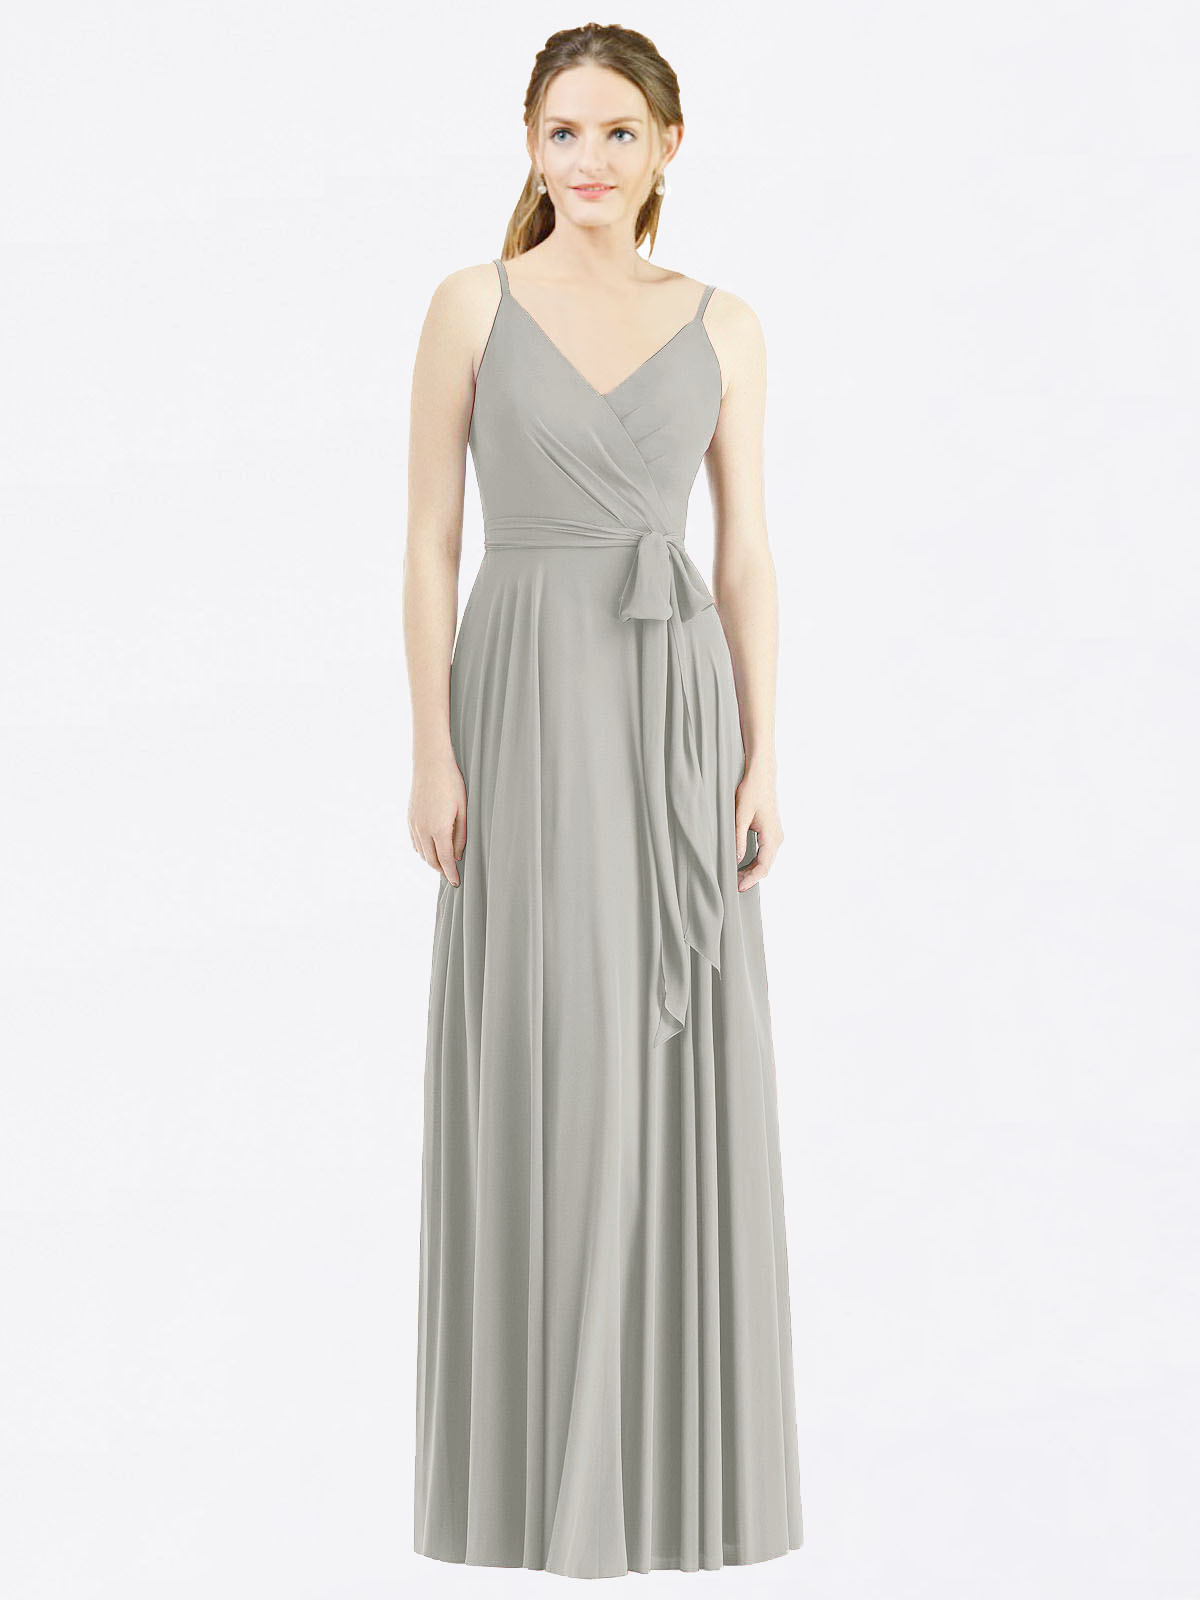 Long A-Line Spaghetti Straps, V-Neck Sleeveless Silver Chiffon Bridesmaid Dress Madilyn